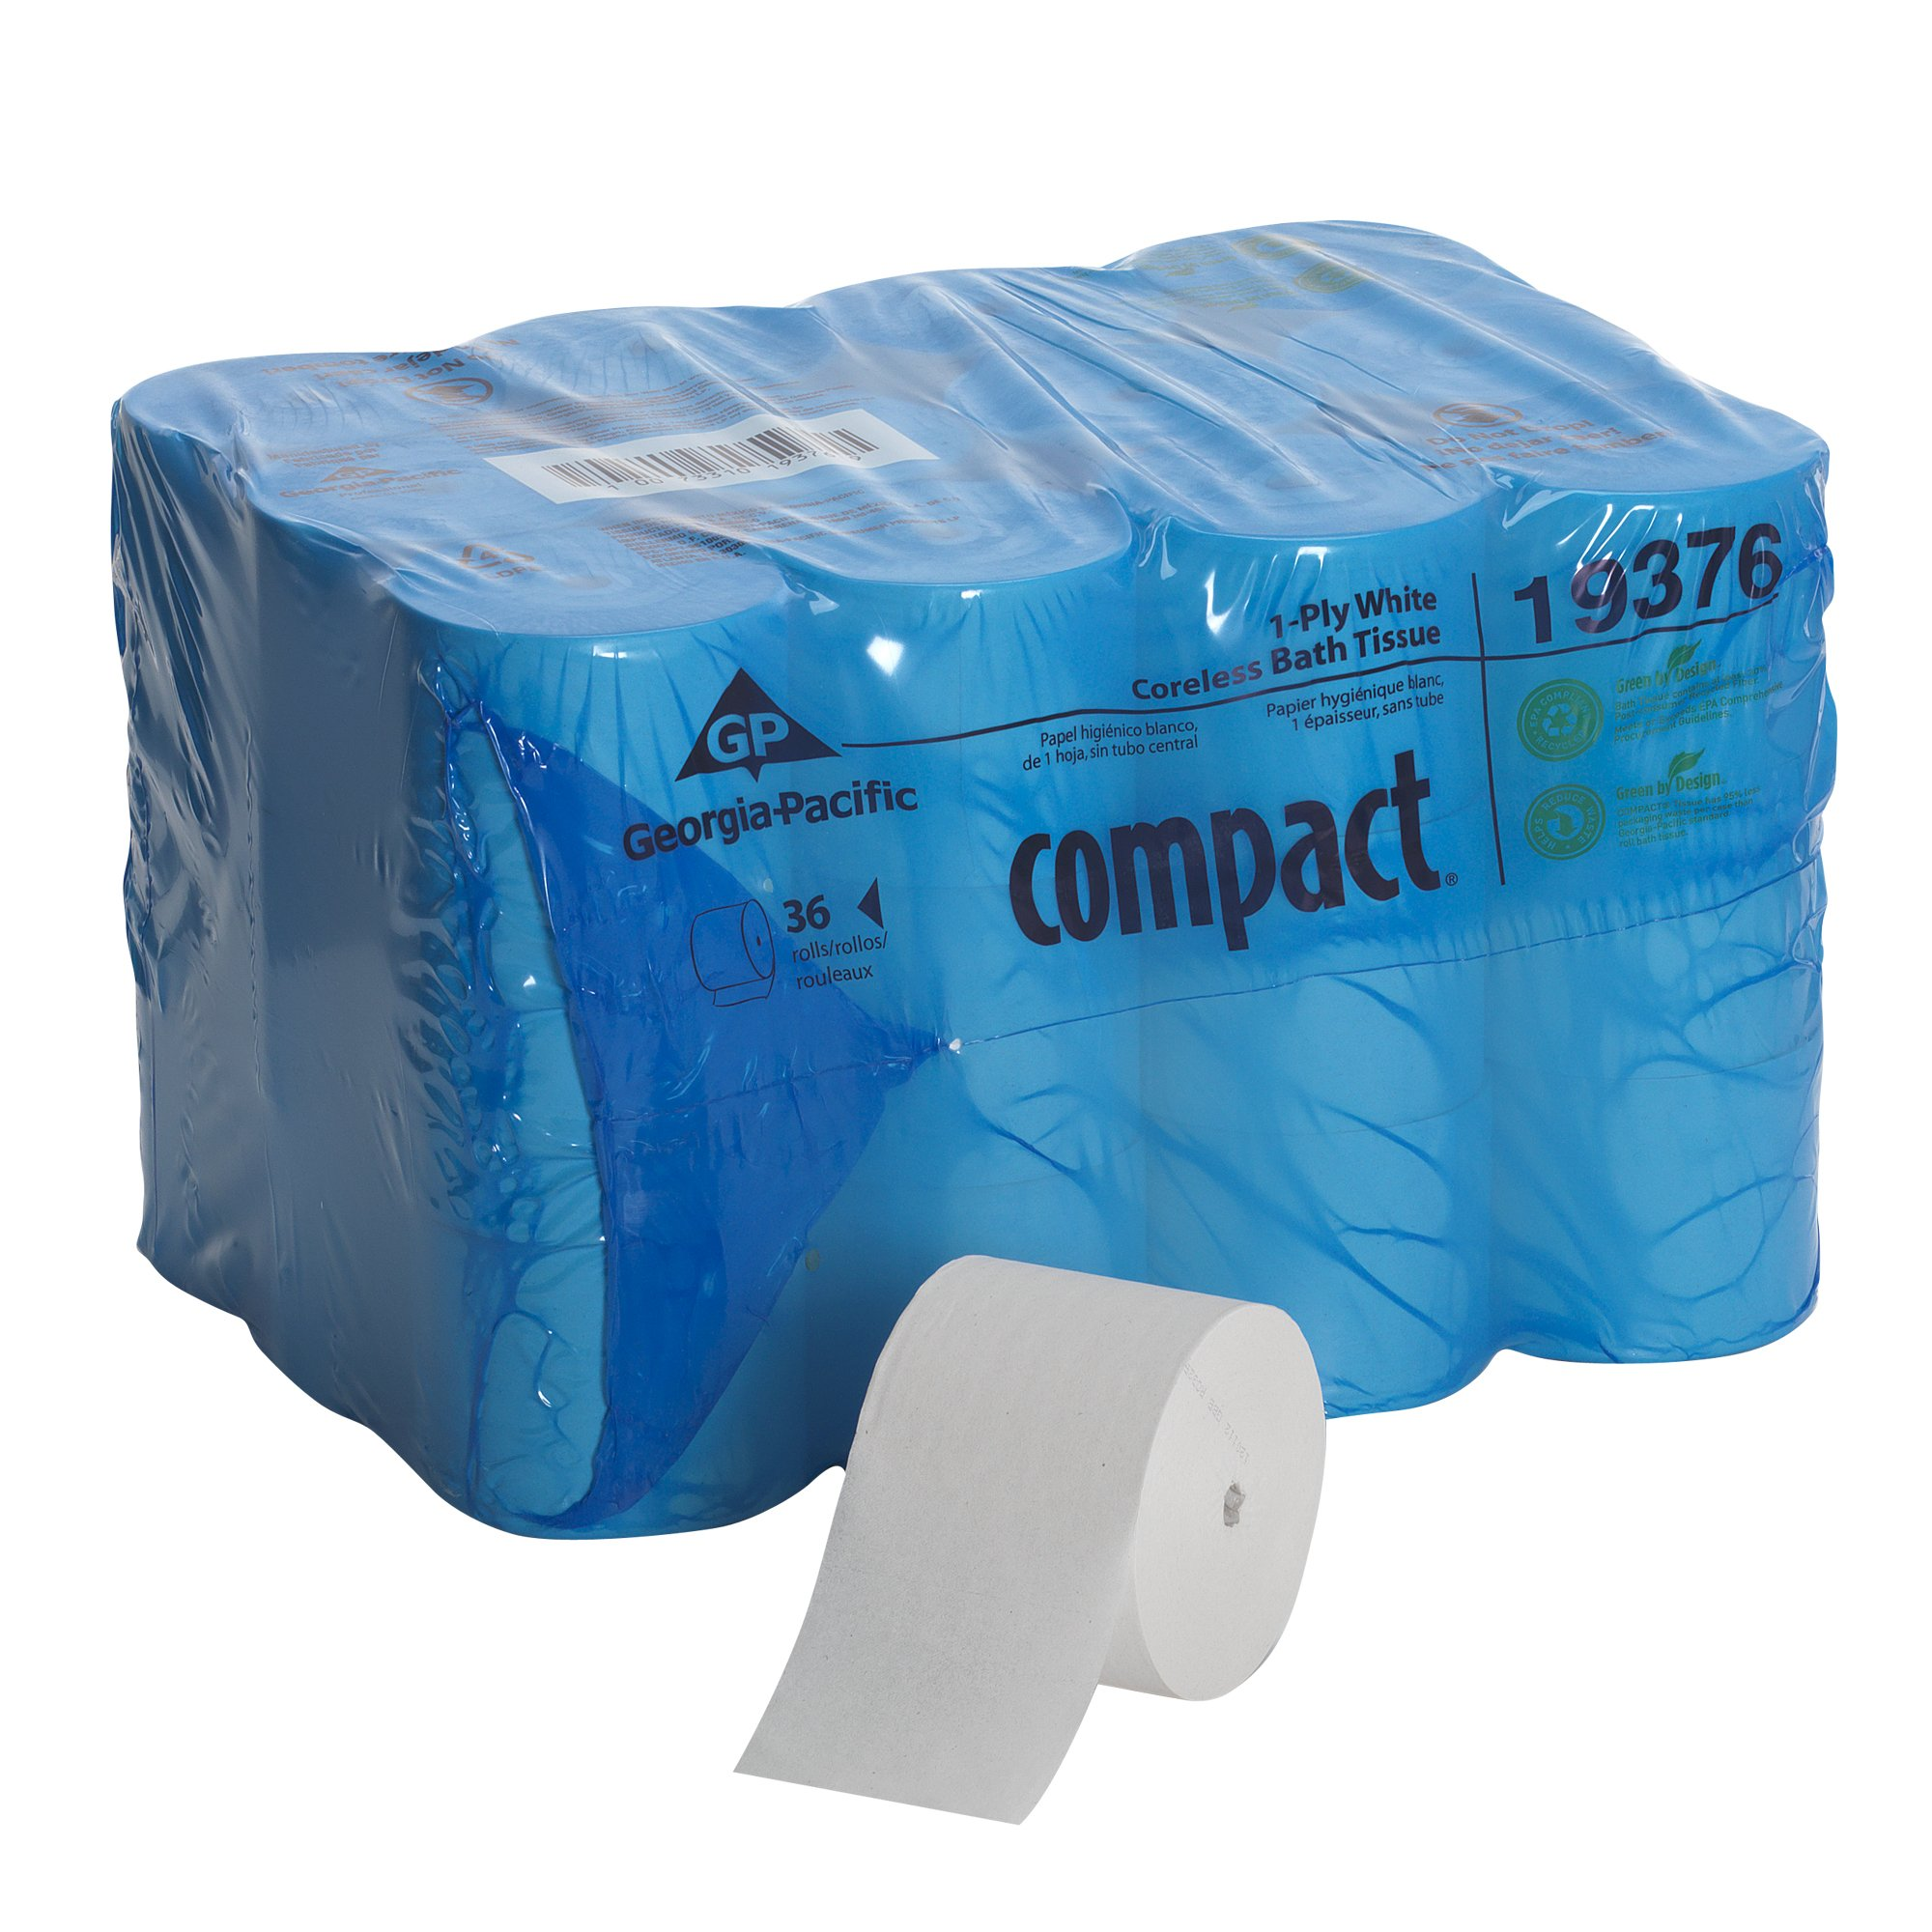 Georgia-Pacific Compact Coreless 1-Ply Toilet Paper, 19376, (Pack of 36)